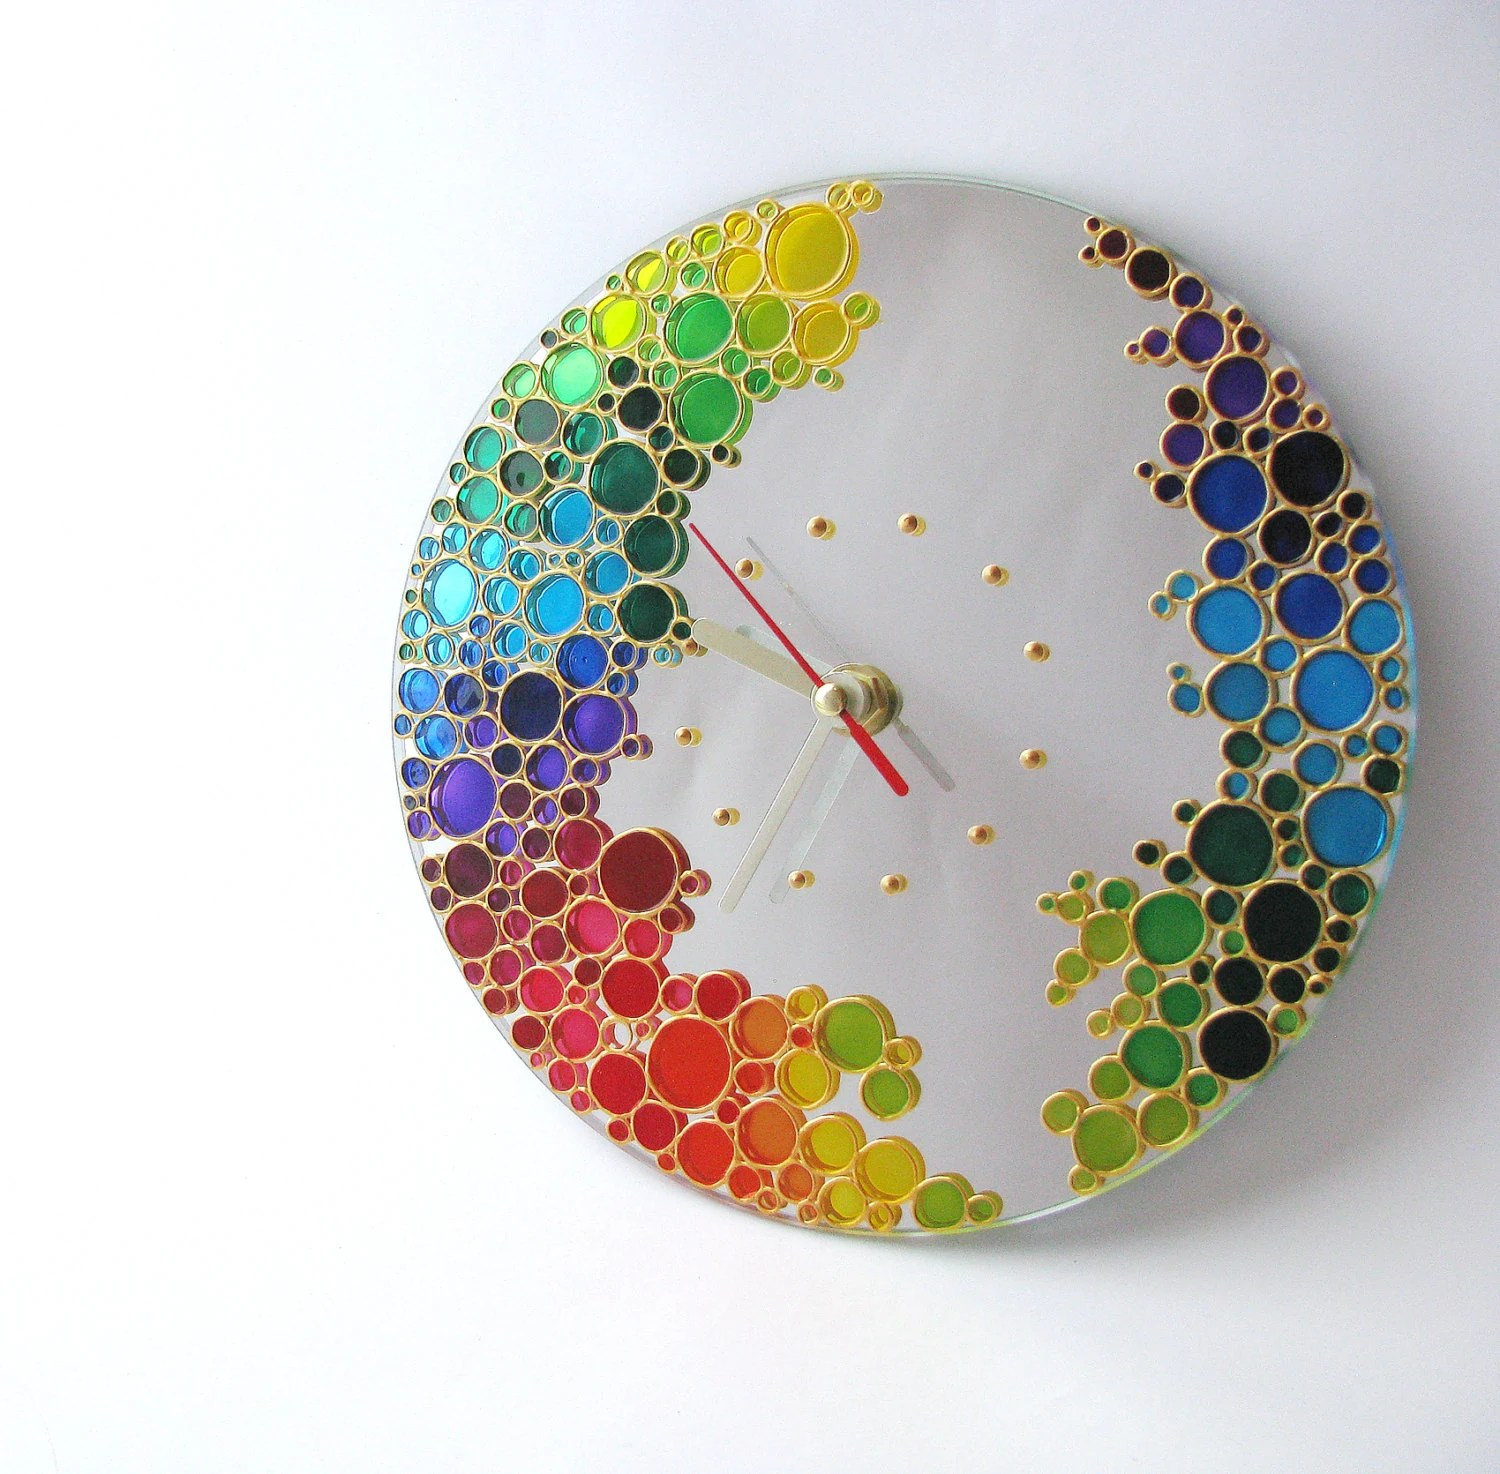 Mirror Wall Clock Rainbow Bubbles Hand Painted Silent Wall